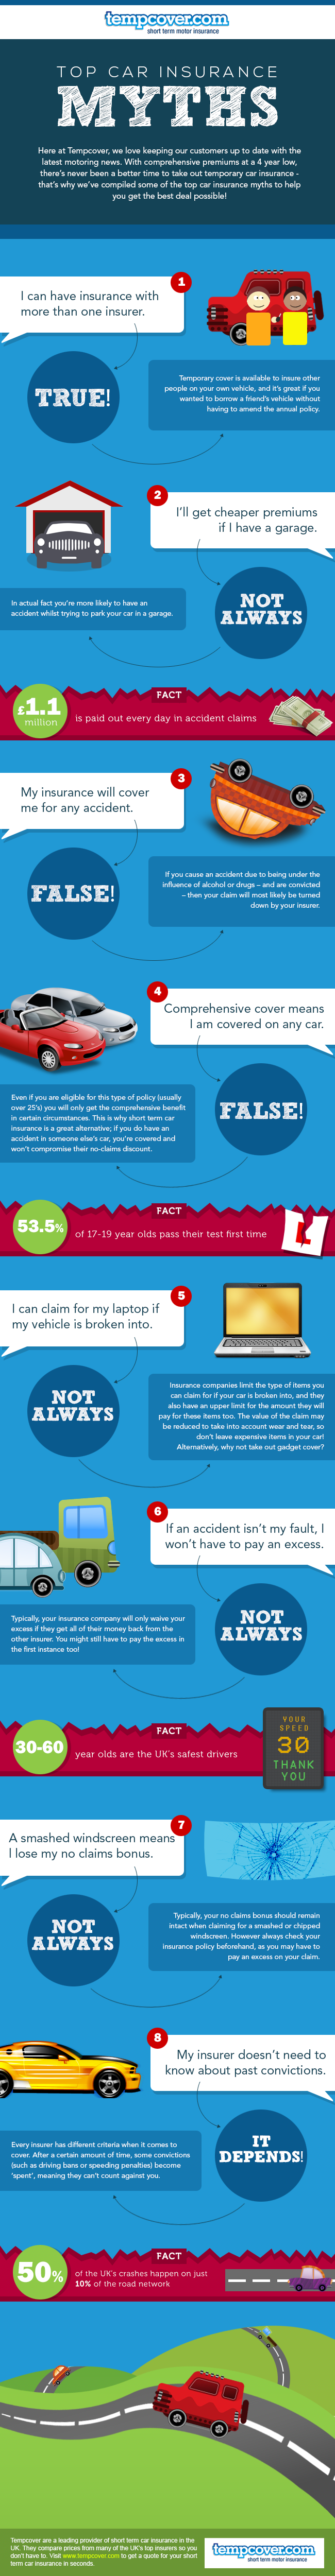 Tempcover-Car-Insurance-Myths-Complete